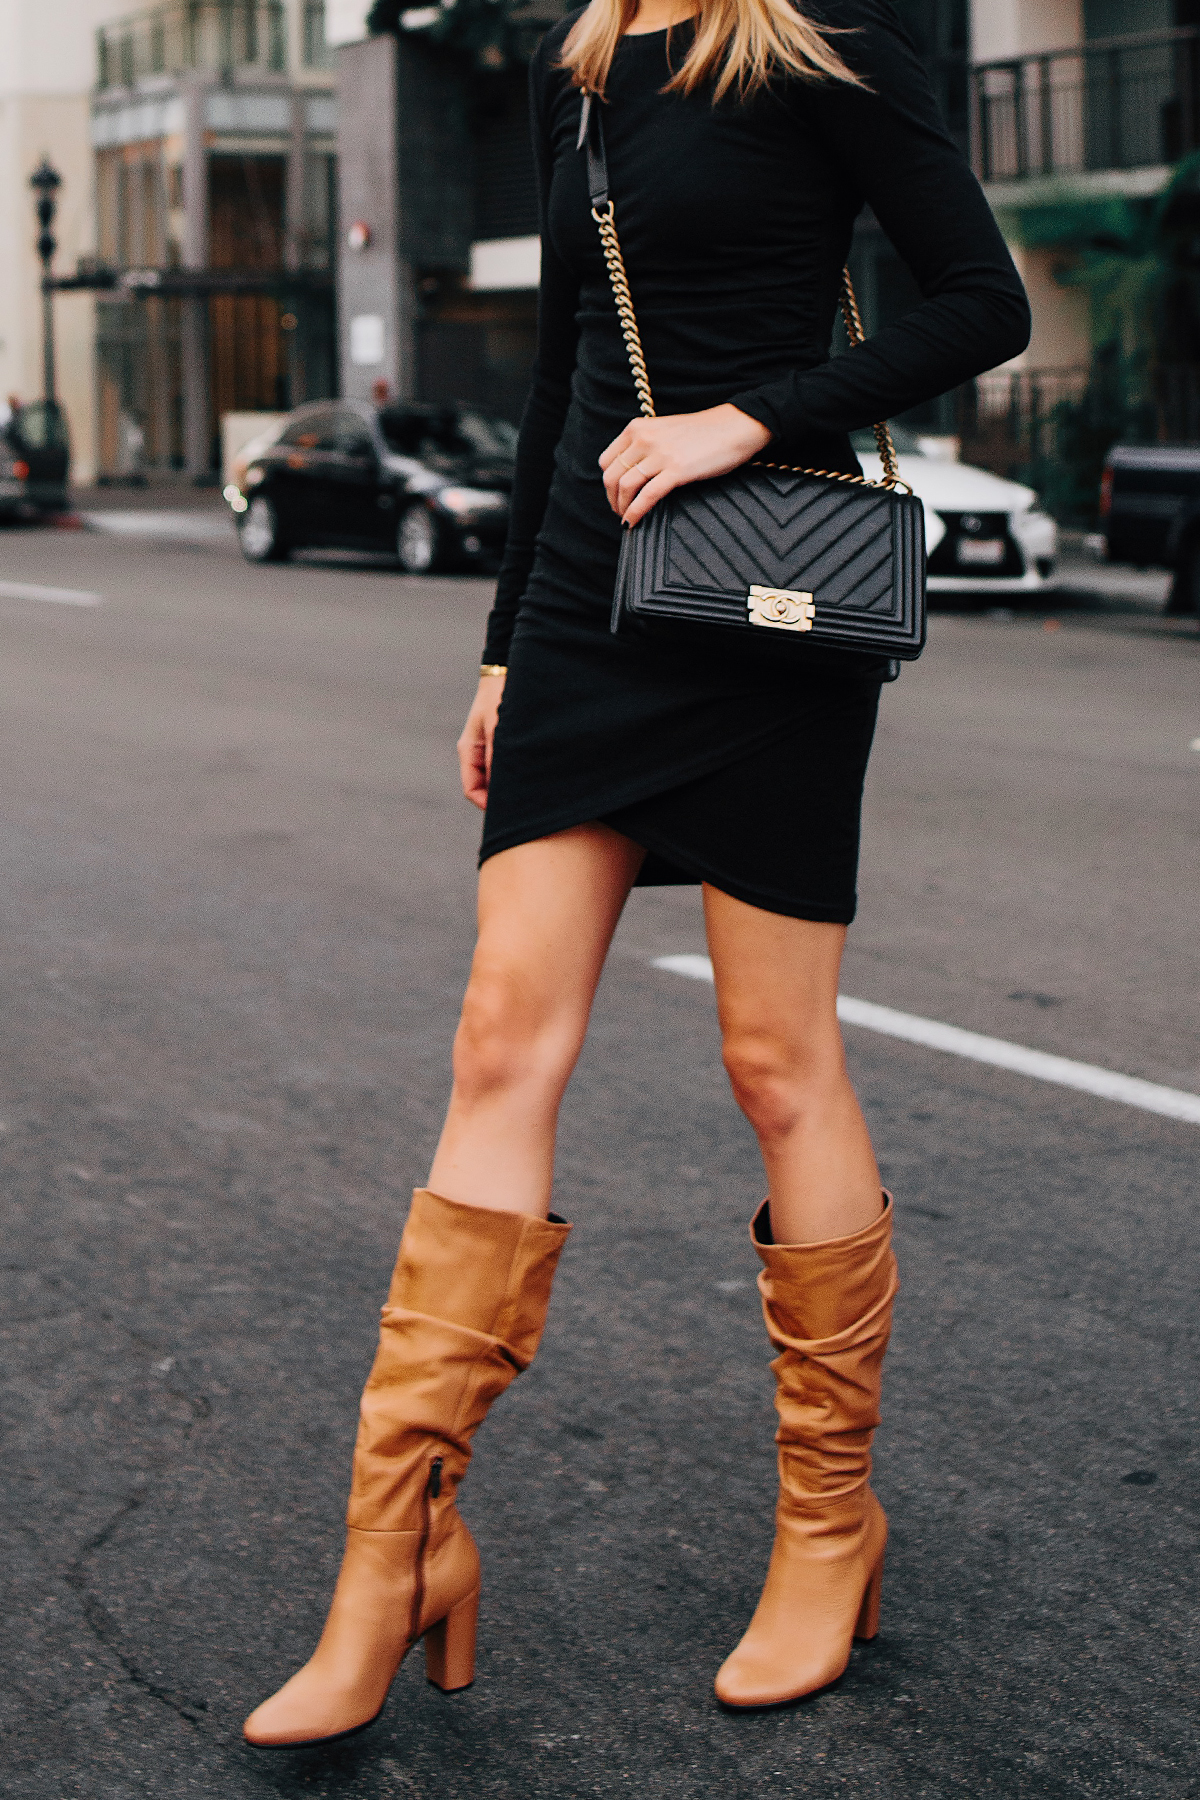 Woman Wearing Black Long Sleeve Bodycon Dress Ecco Tan Leather Heeled Boots Chanel Black Boy Bag Fashion Jackson San Diego Fashion Blogger Street Style